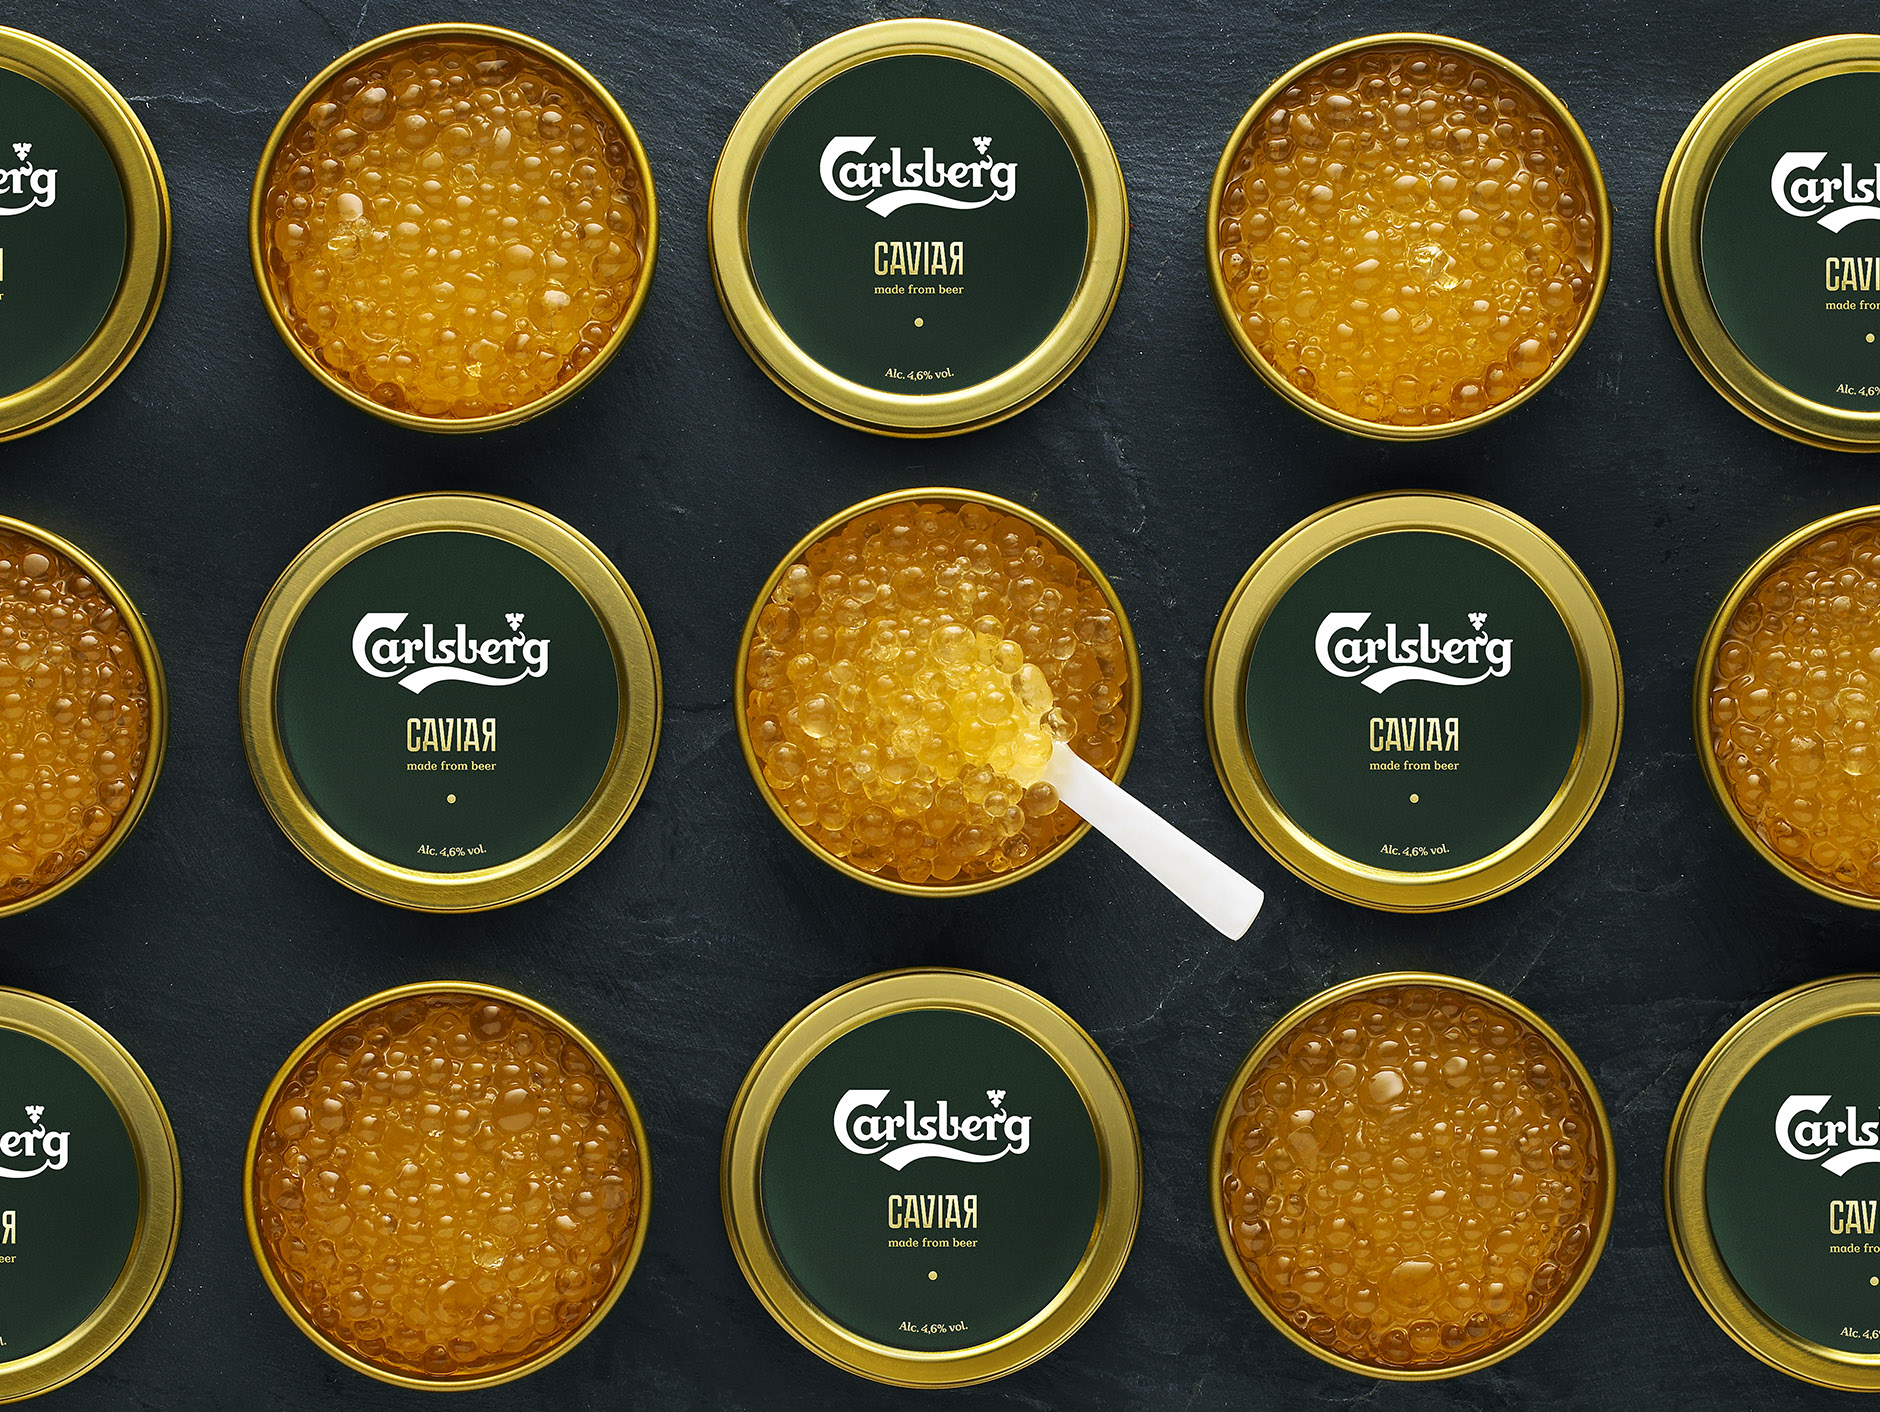 Carlsberg_Caviar_LowRes_Collection.jpg